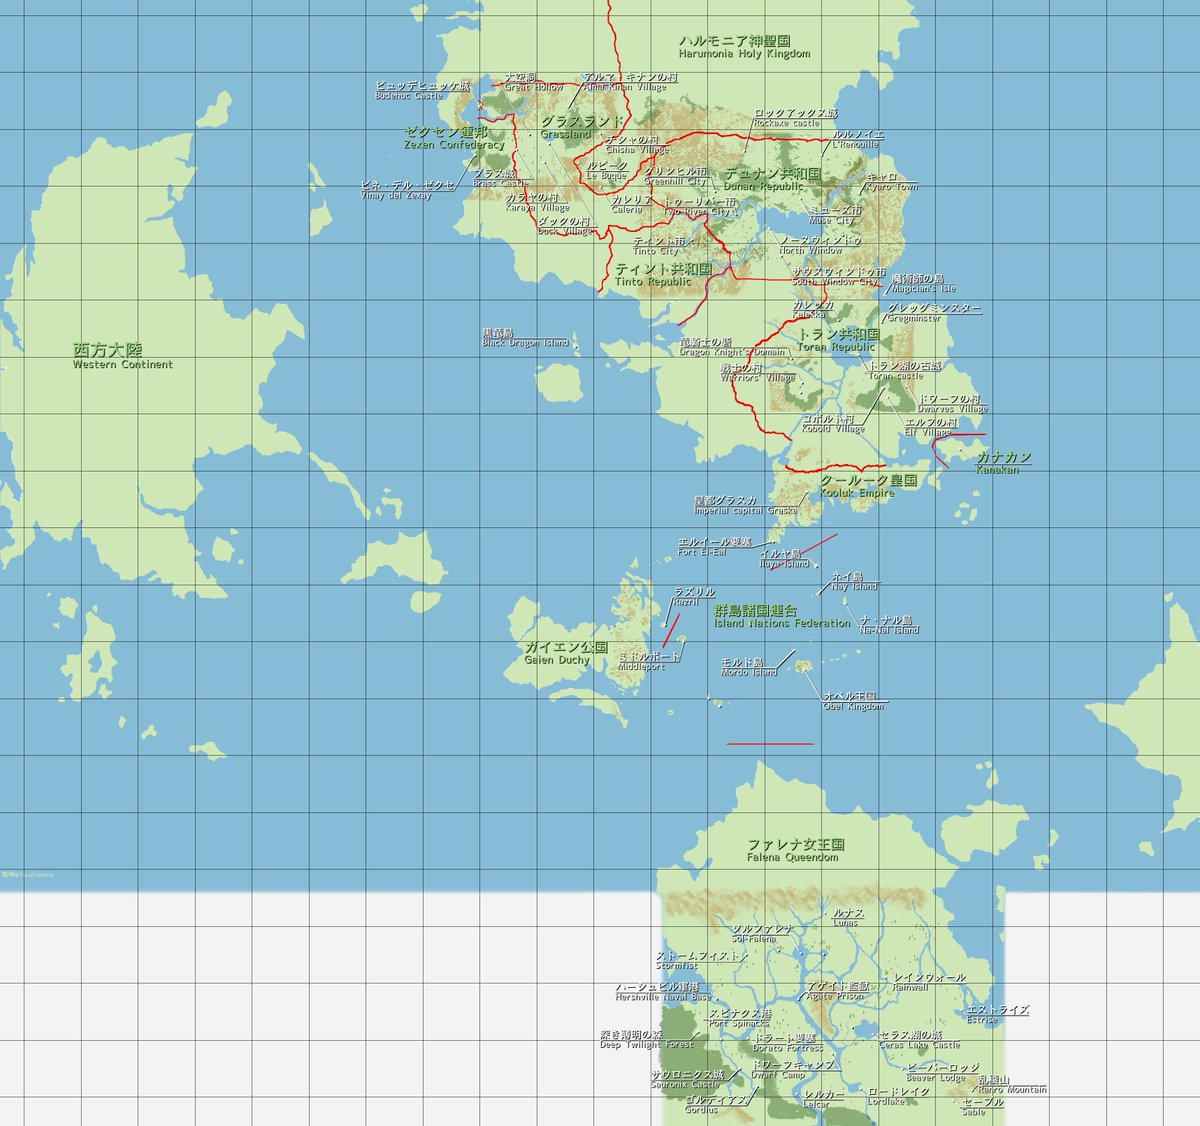 Suikoden Map Images - Reverse Search